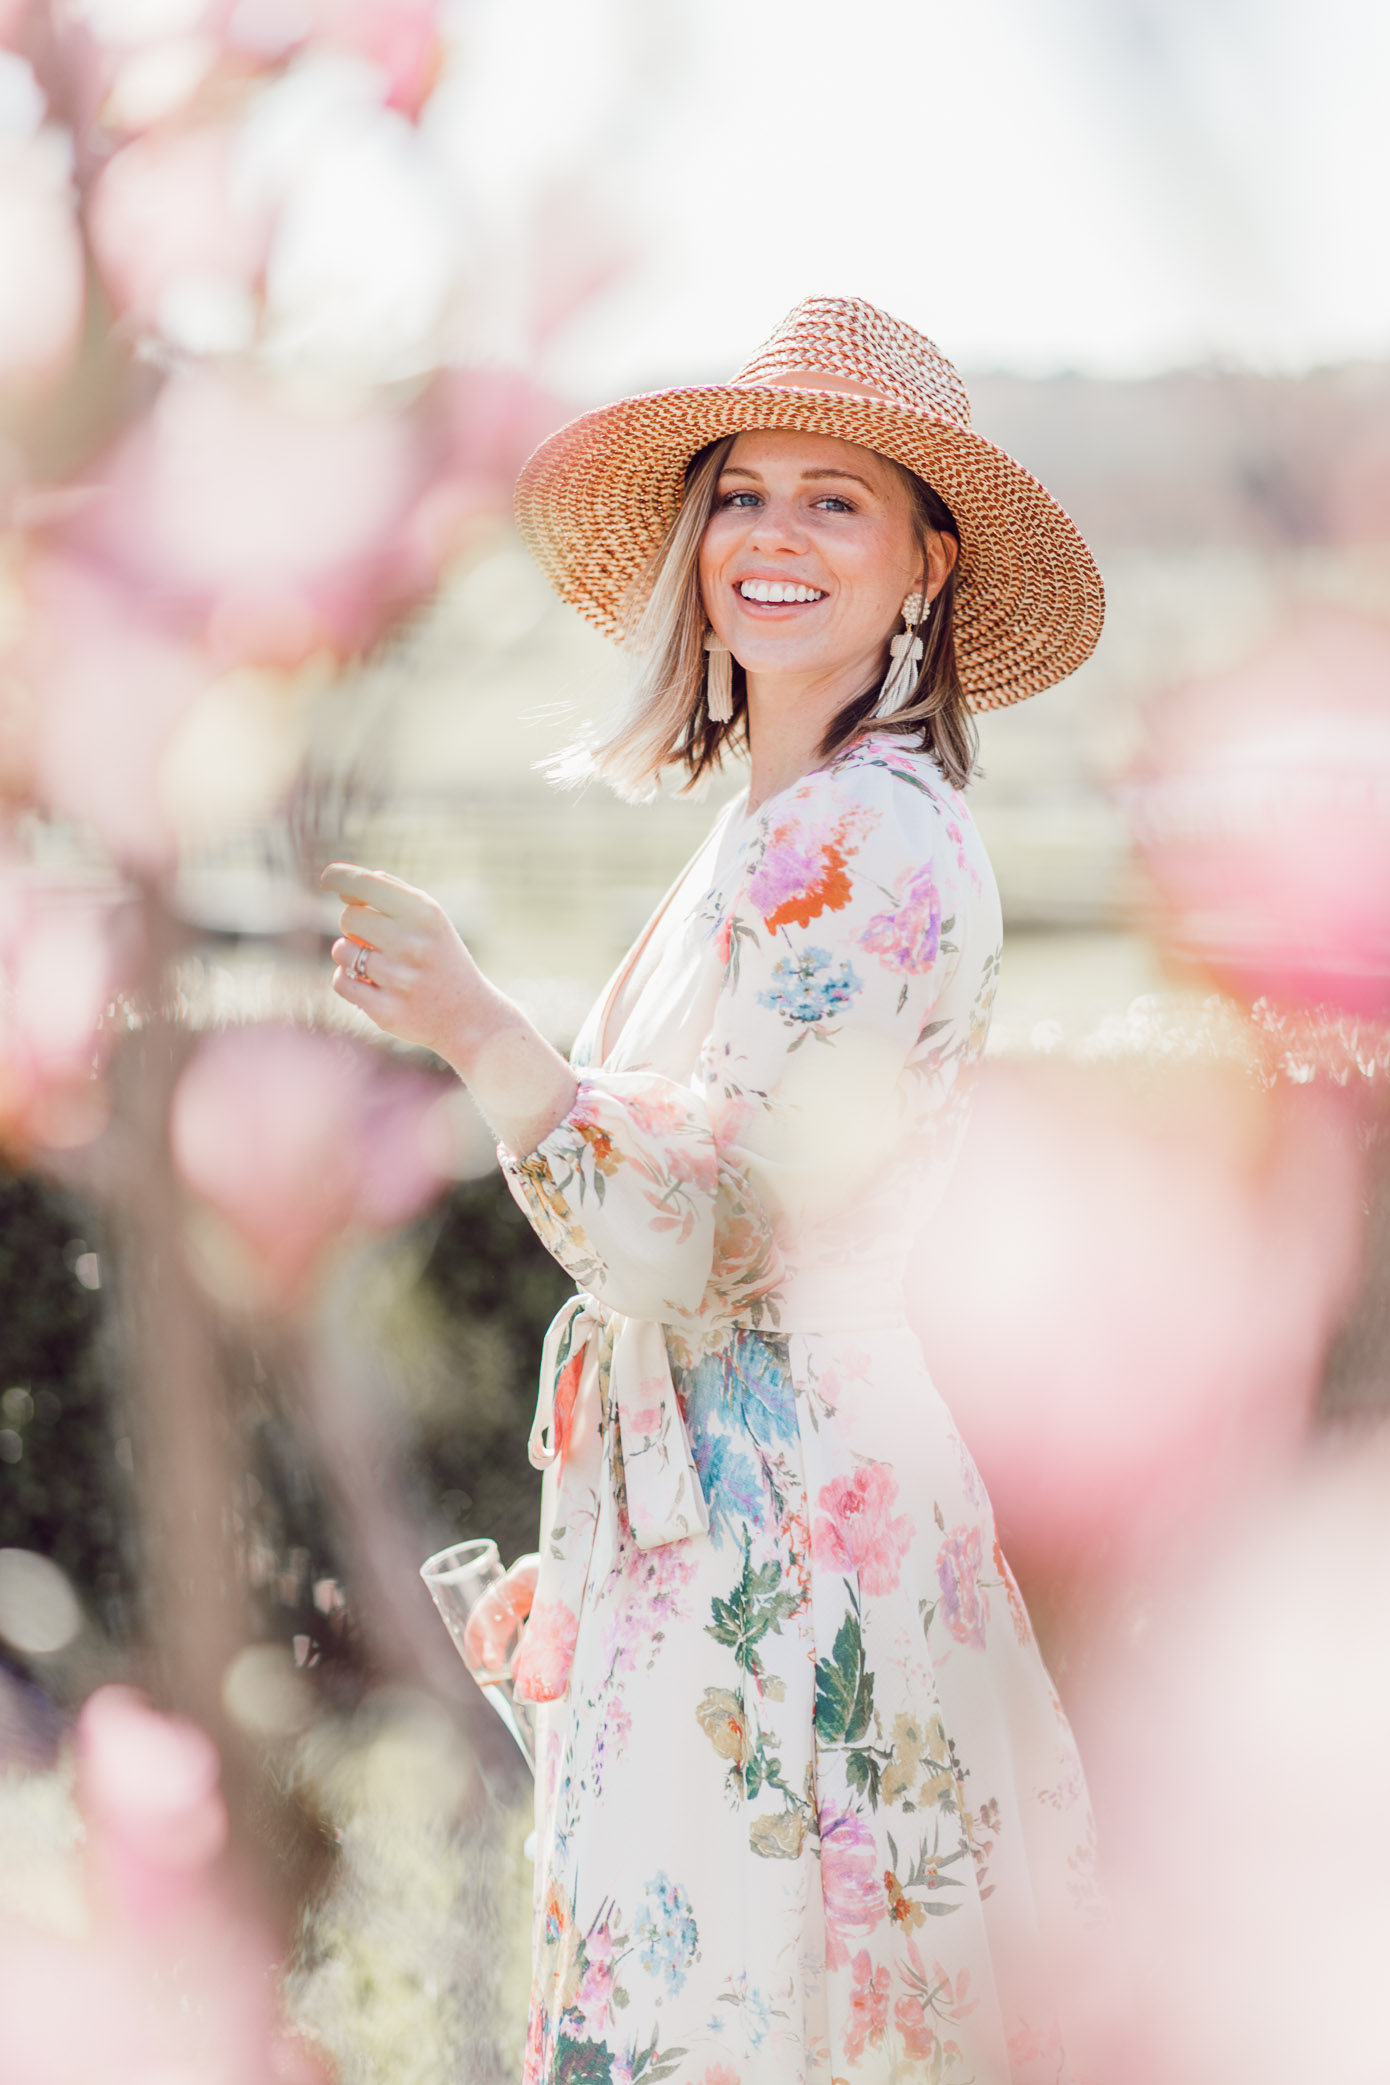 Queens Cup Steeplechase outfit ideas 2019 + the best floral dresses of the season to shop now | Louella Reese